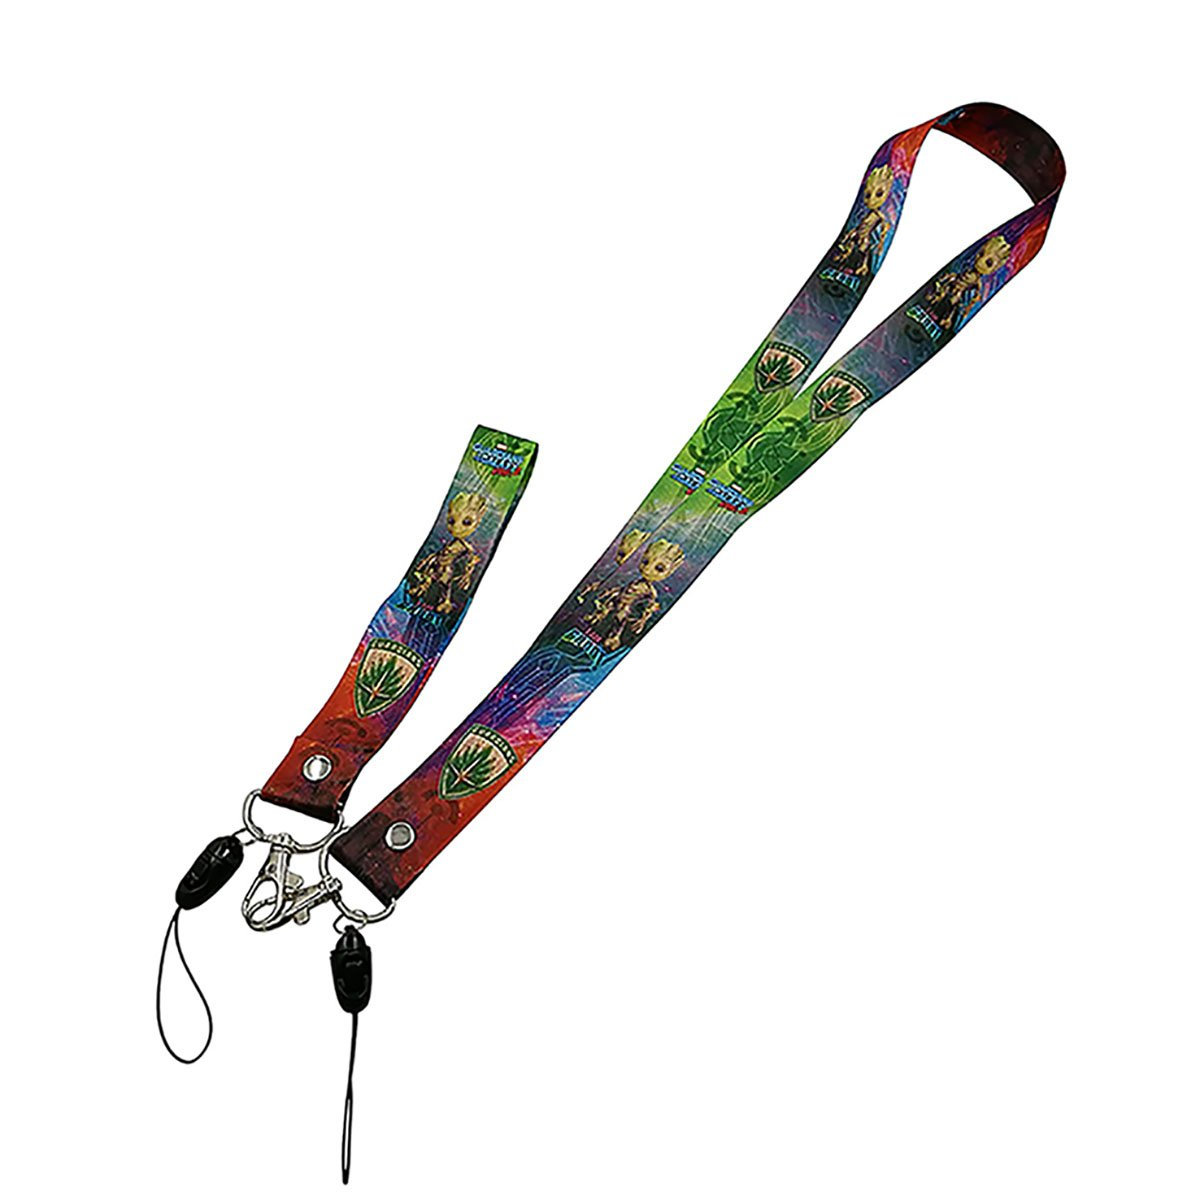 Guardians of The Galaxy Groot Lanyard with Groot baby wristband for security badges, ID's, keys, etc ID' s Tvoj poklon